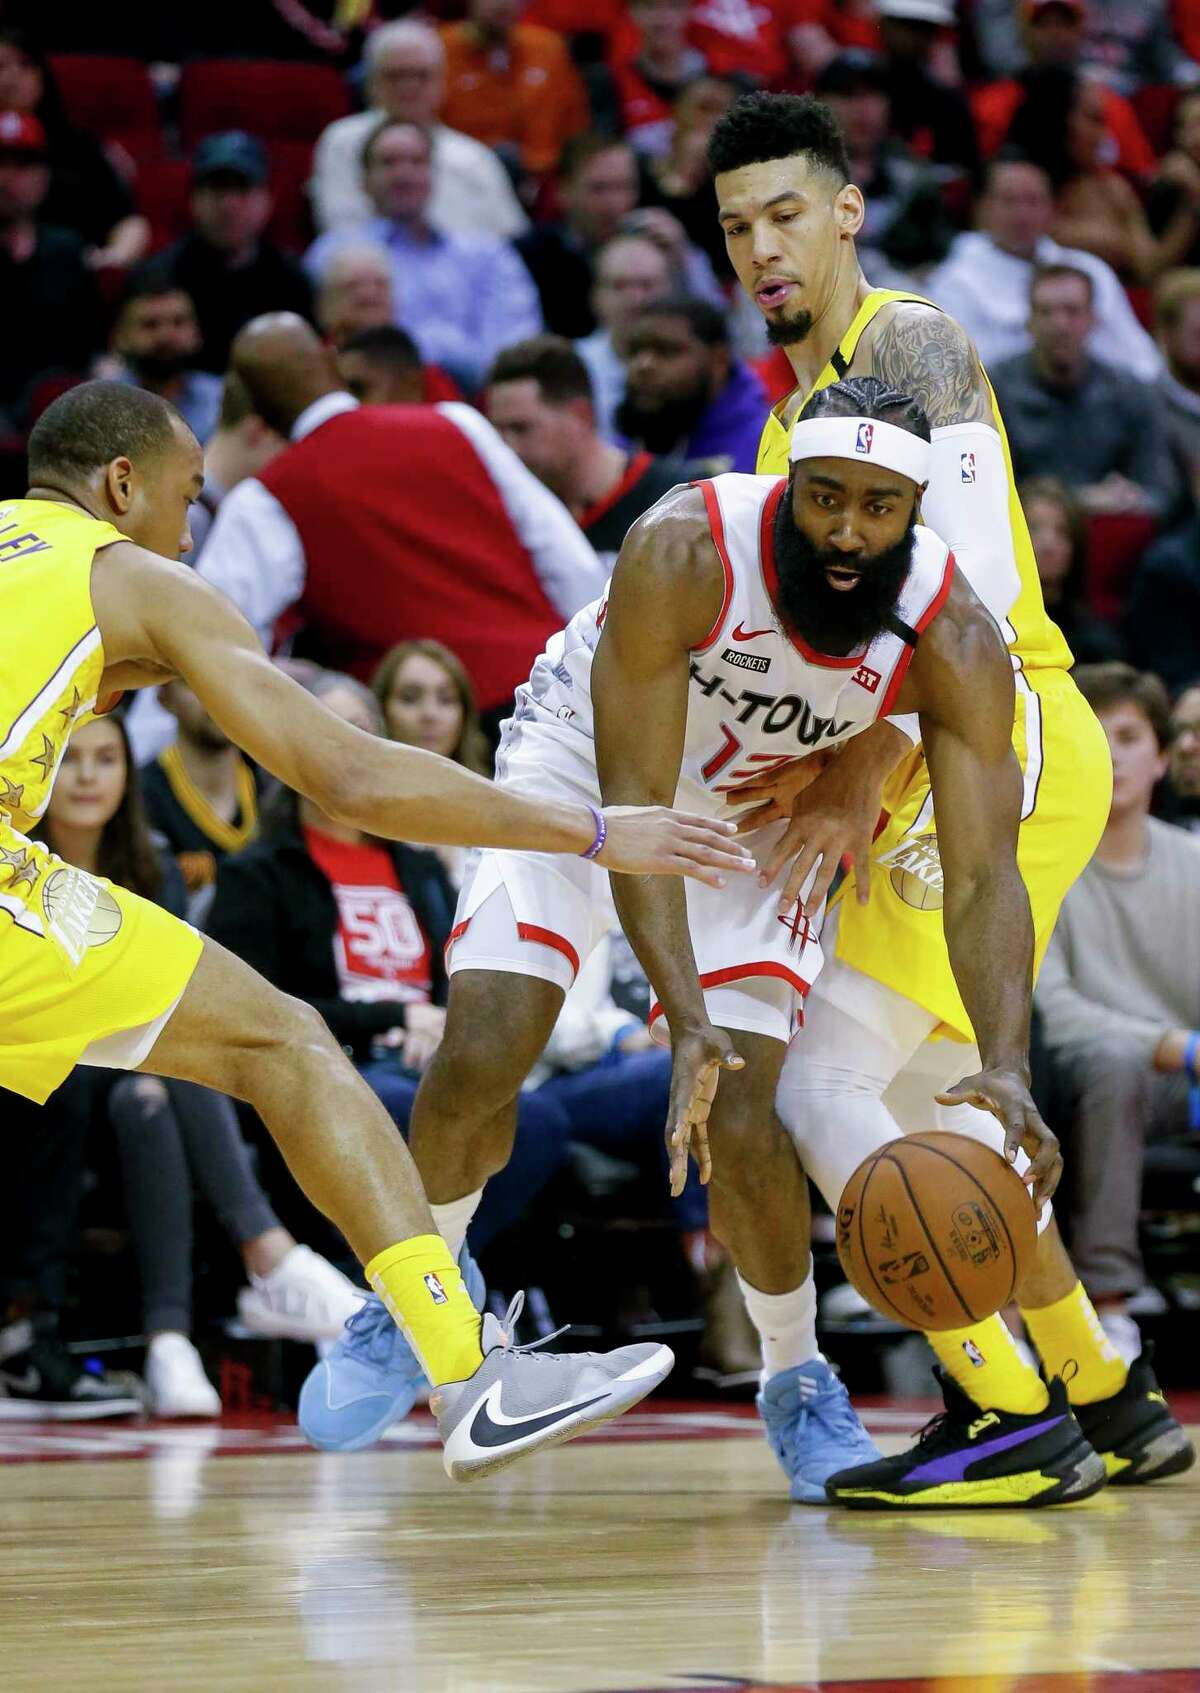 Houston Rockets guard James Harden (13) makes his way through two Los Angeles Lakers players during the first half of an NBA game at the Toyota Center on Saturday, Jan. 18, 2020.